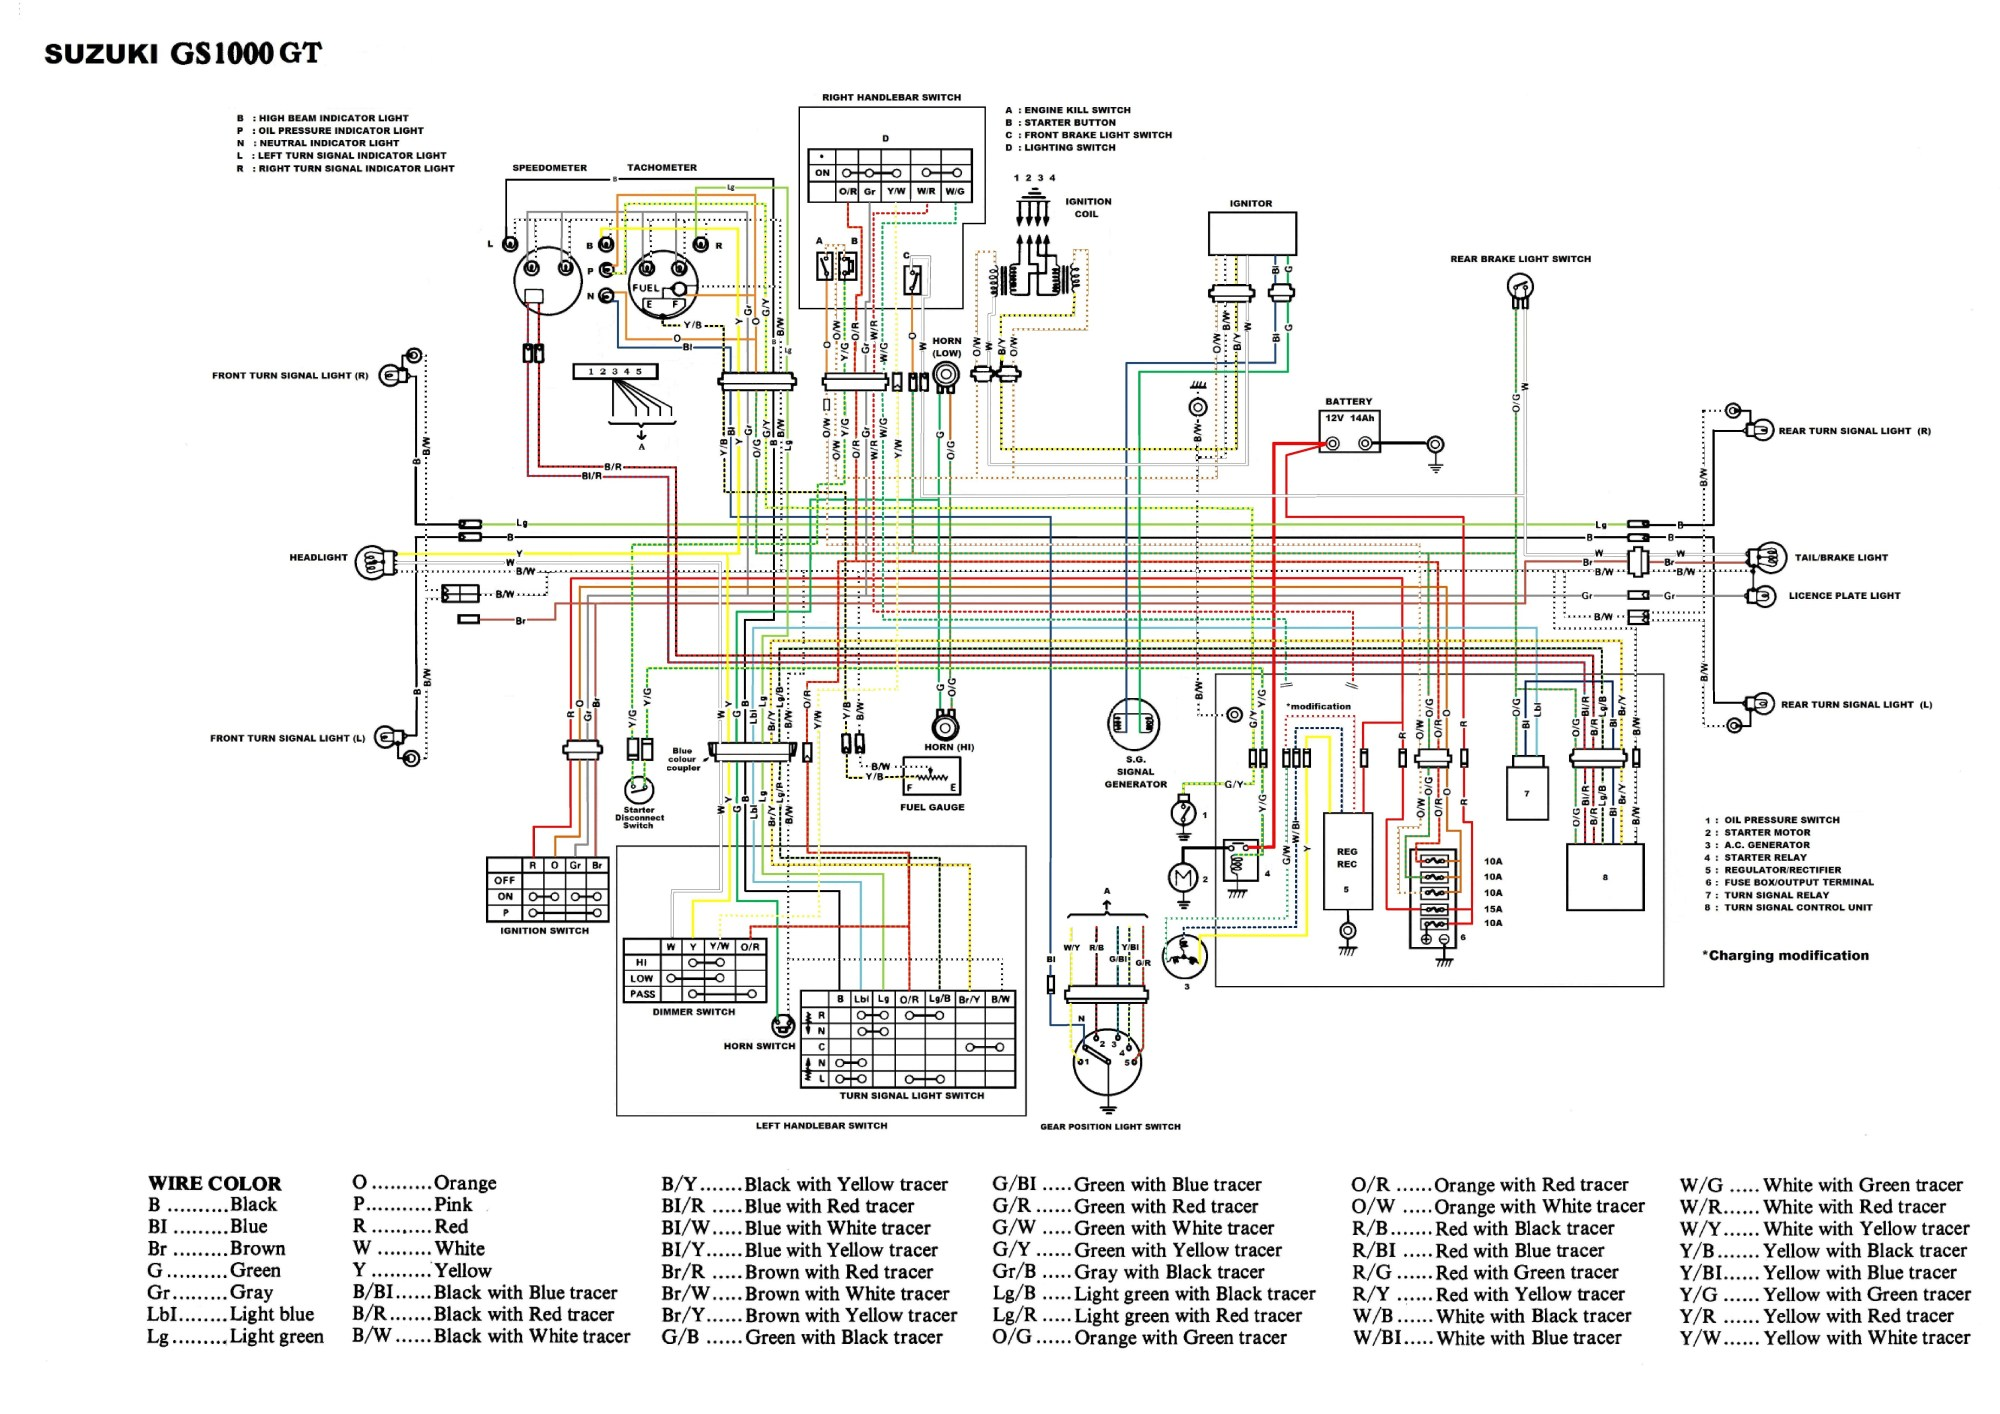 hight resolution of suzuki b200 wiring diagram wiring diagram schema1986 suzuki gs750 wiring colors schema diagram database suzuki b200